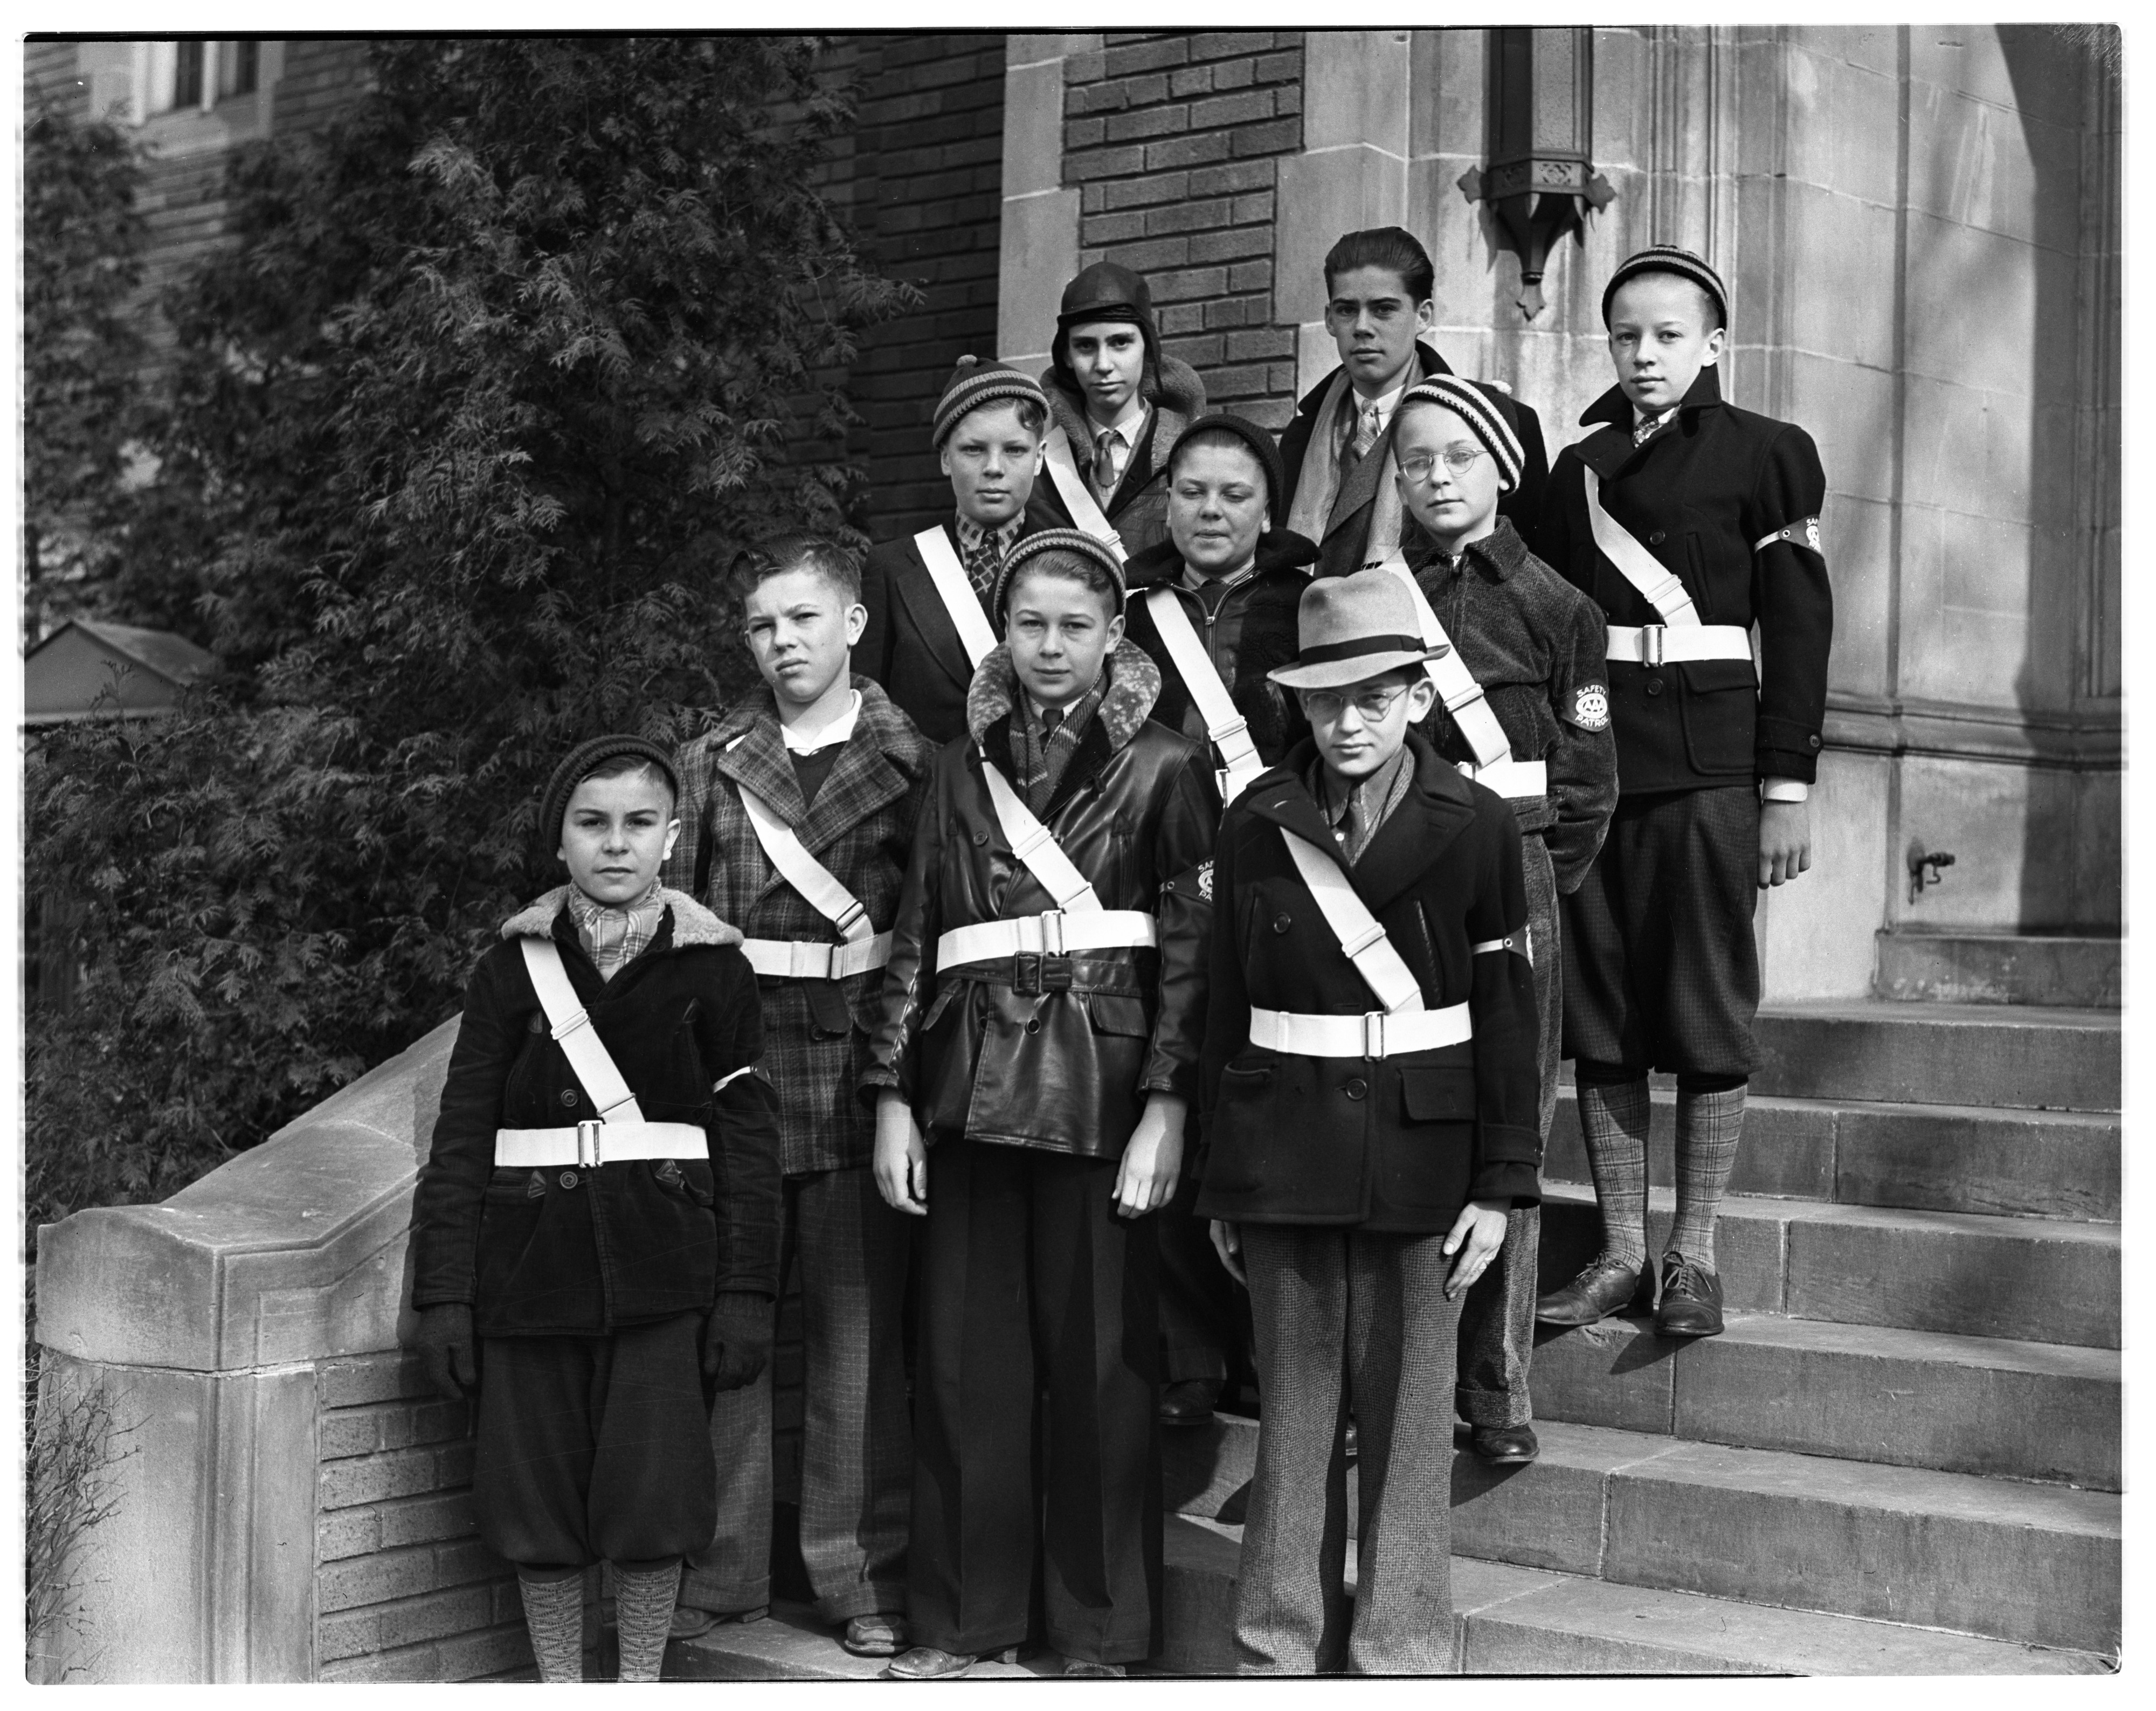 St. Paul's Lutheran Church Safety Patrol, April 1937 image